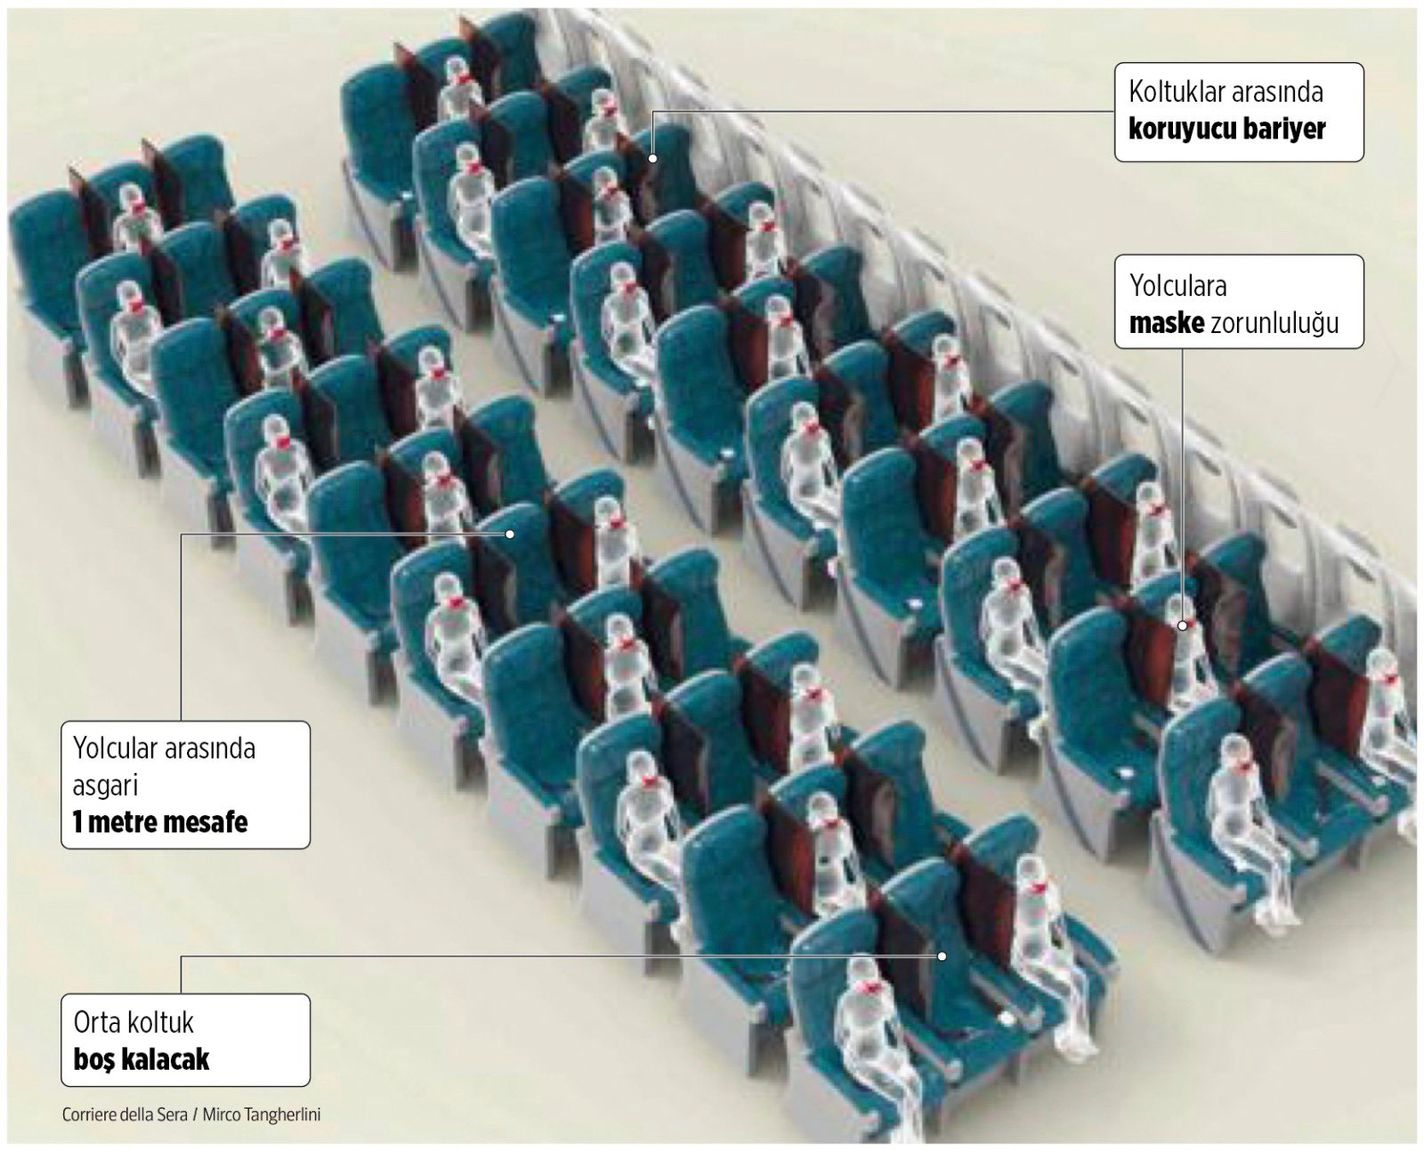 Seating Arrangements in Planes After Coronary Virus in Italy